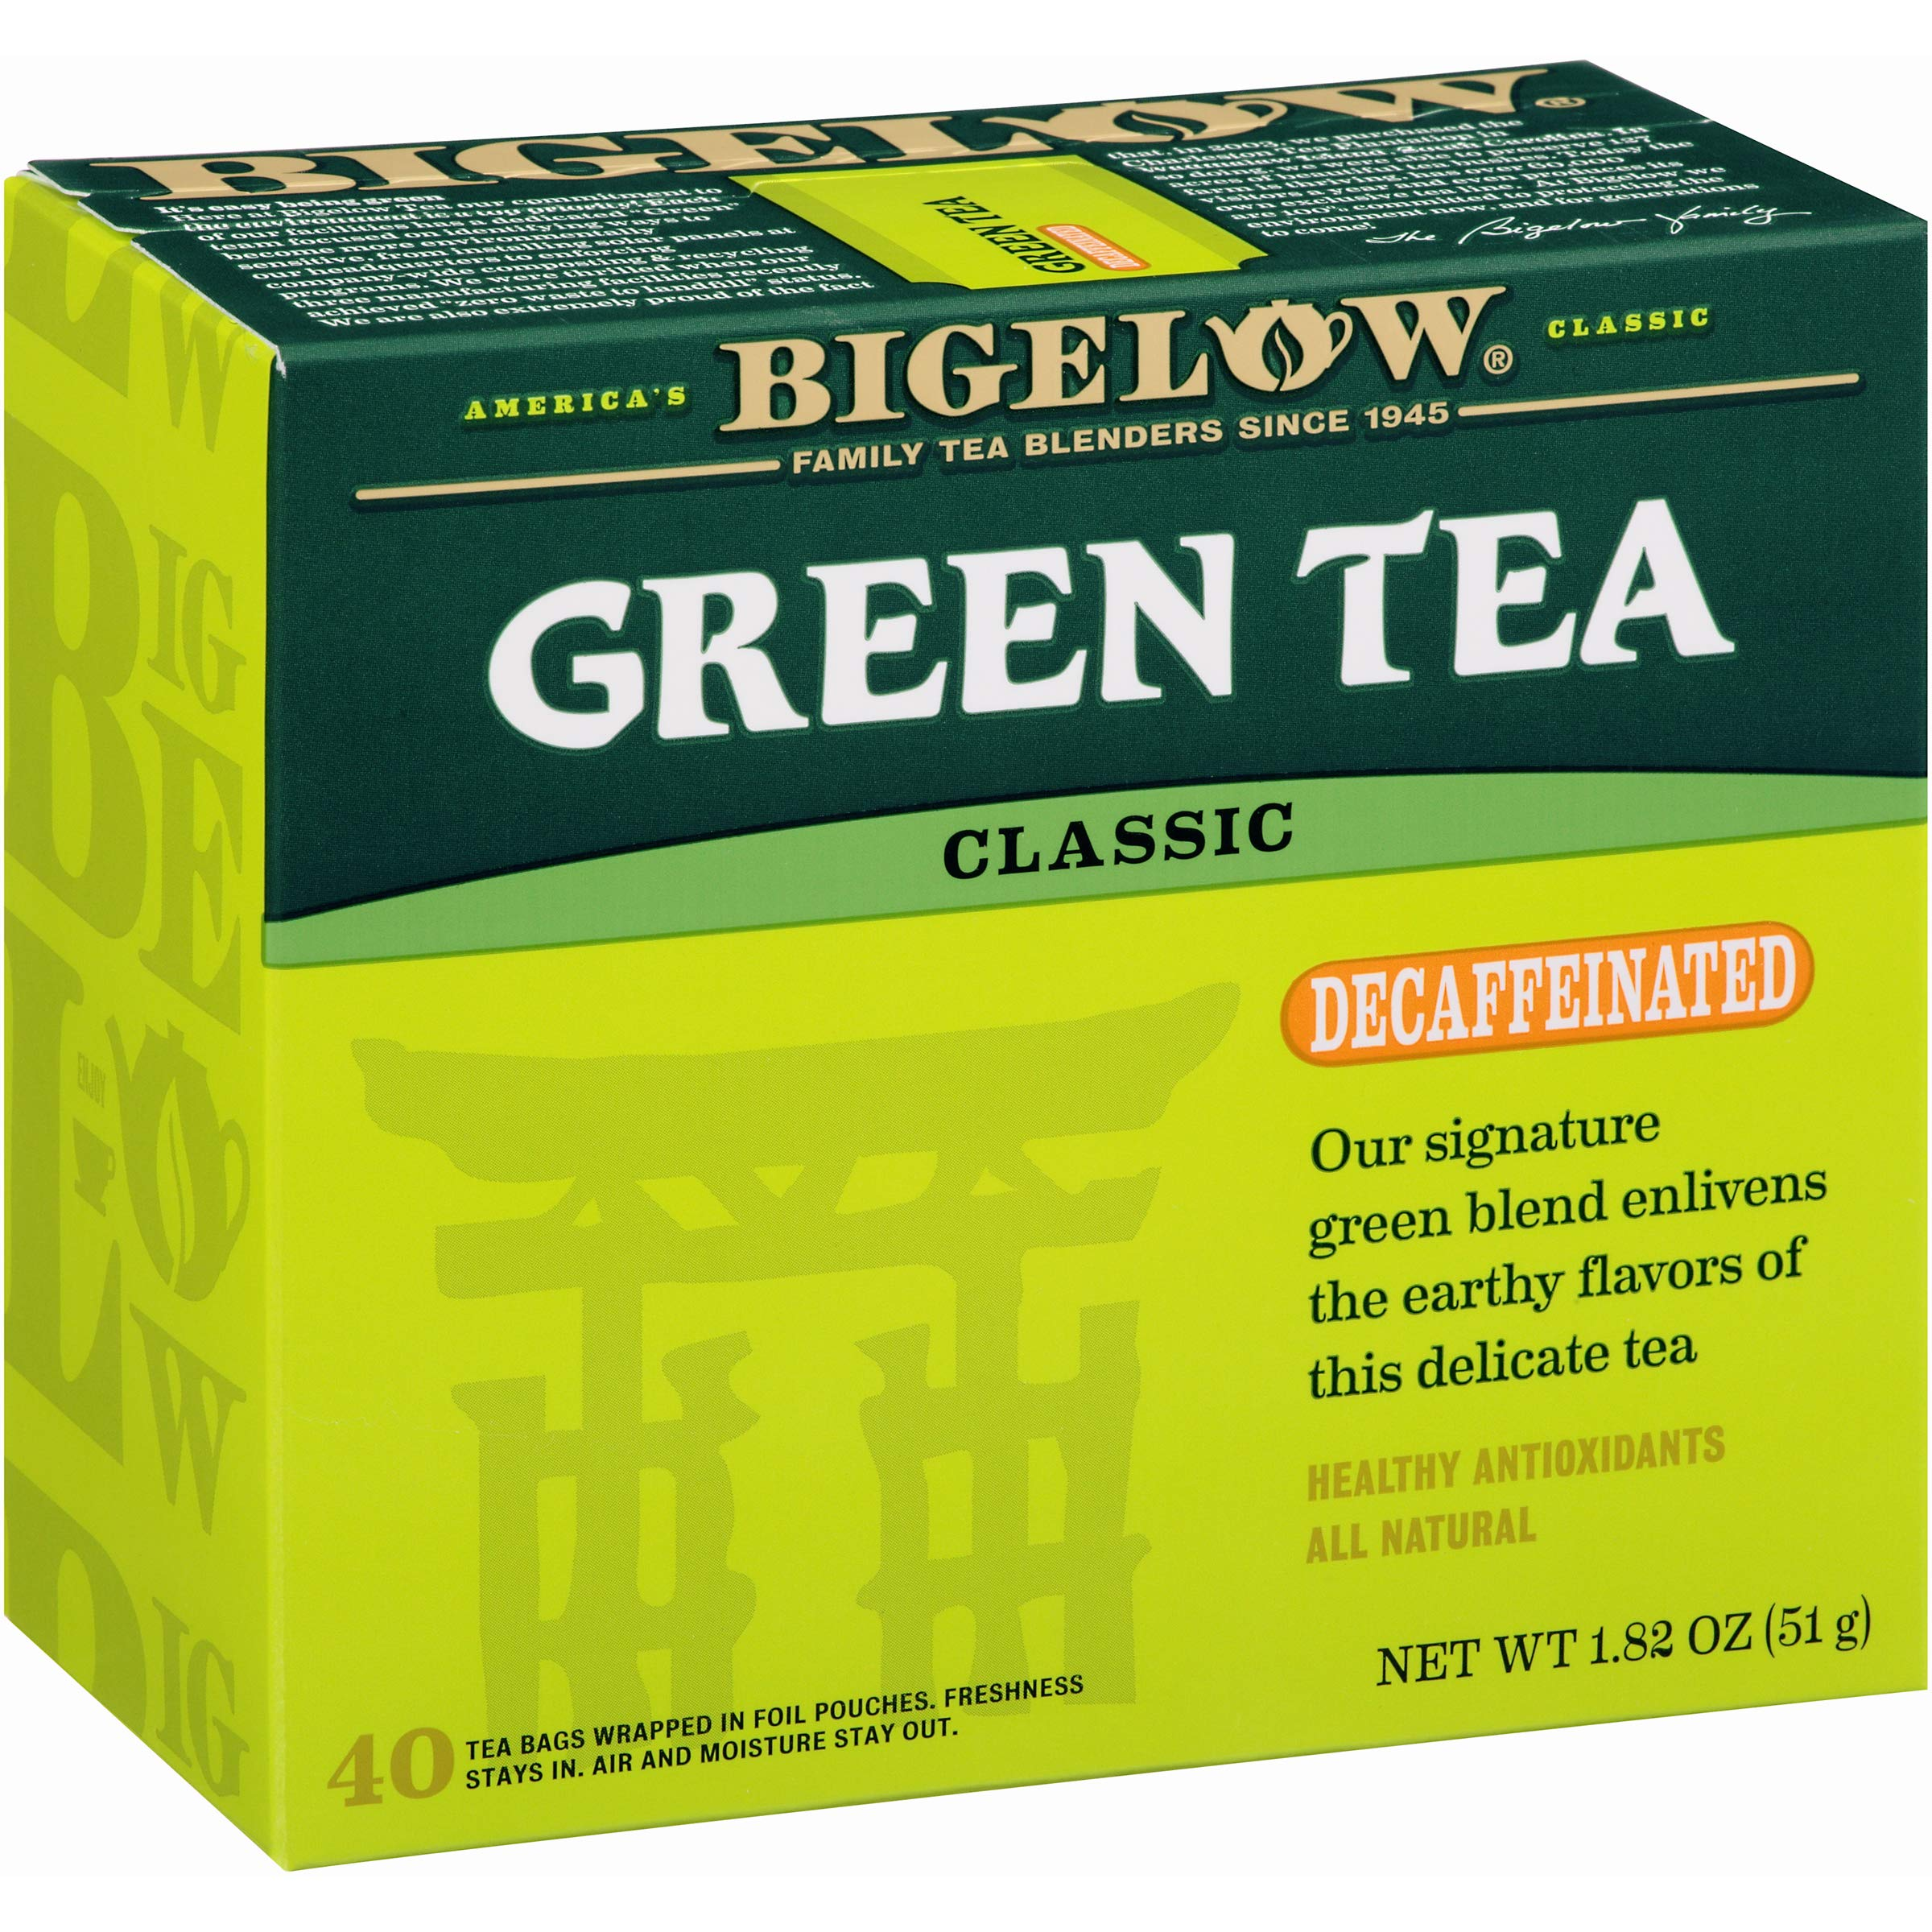 Bigelow Decaffeinated Green Tea 4, Decaffeinated Individual Green Tea Bags, for Hot Tea or Iced Tea, Drink Plain or Sweetened with Honey or Sugar, 40 Count, Pack of 6 by Bigelow